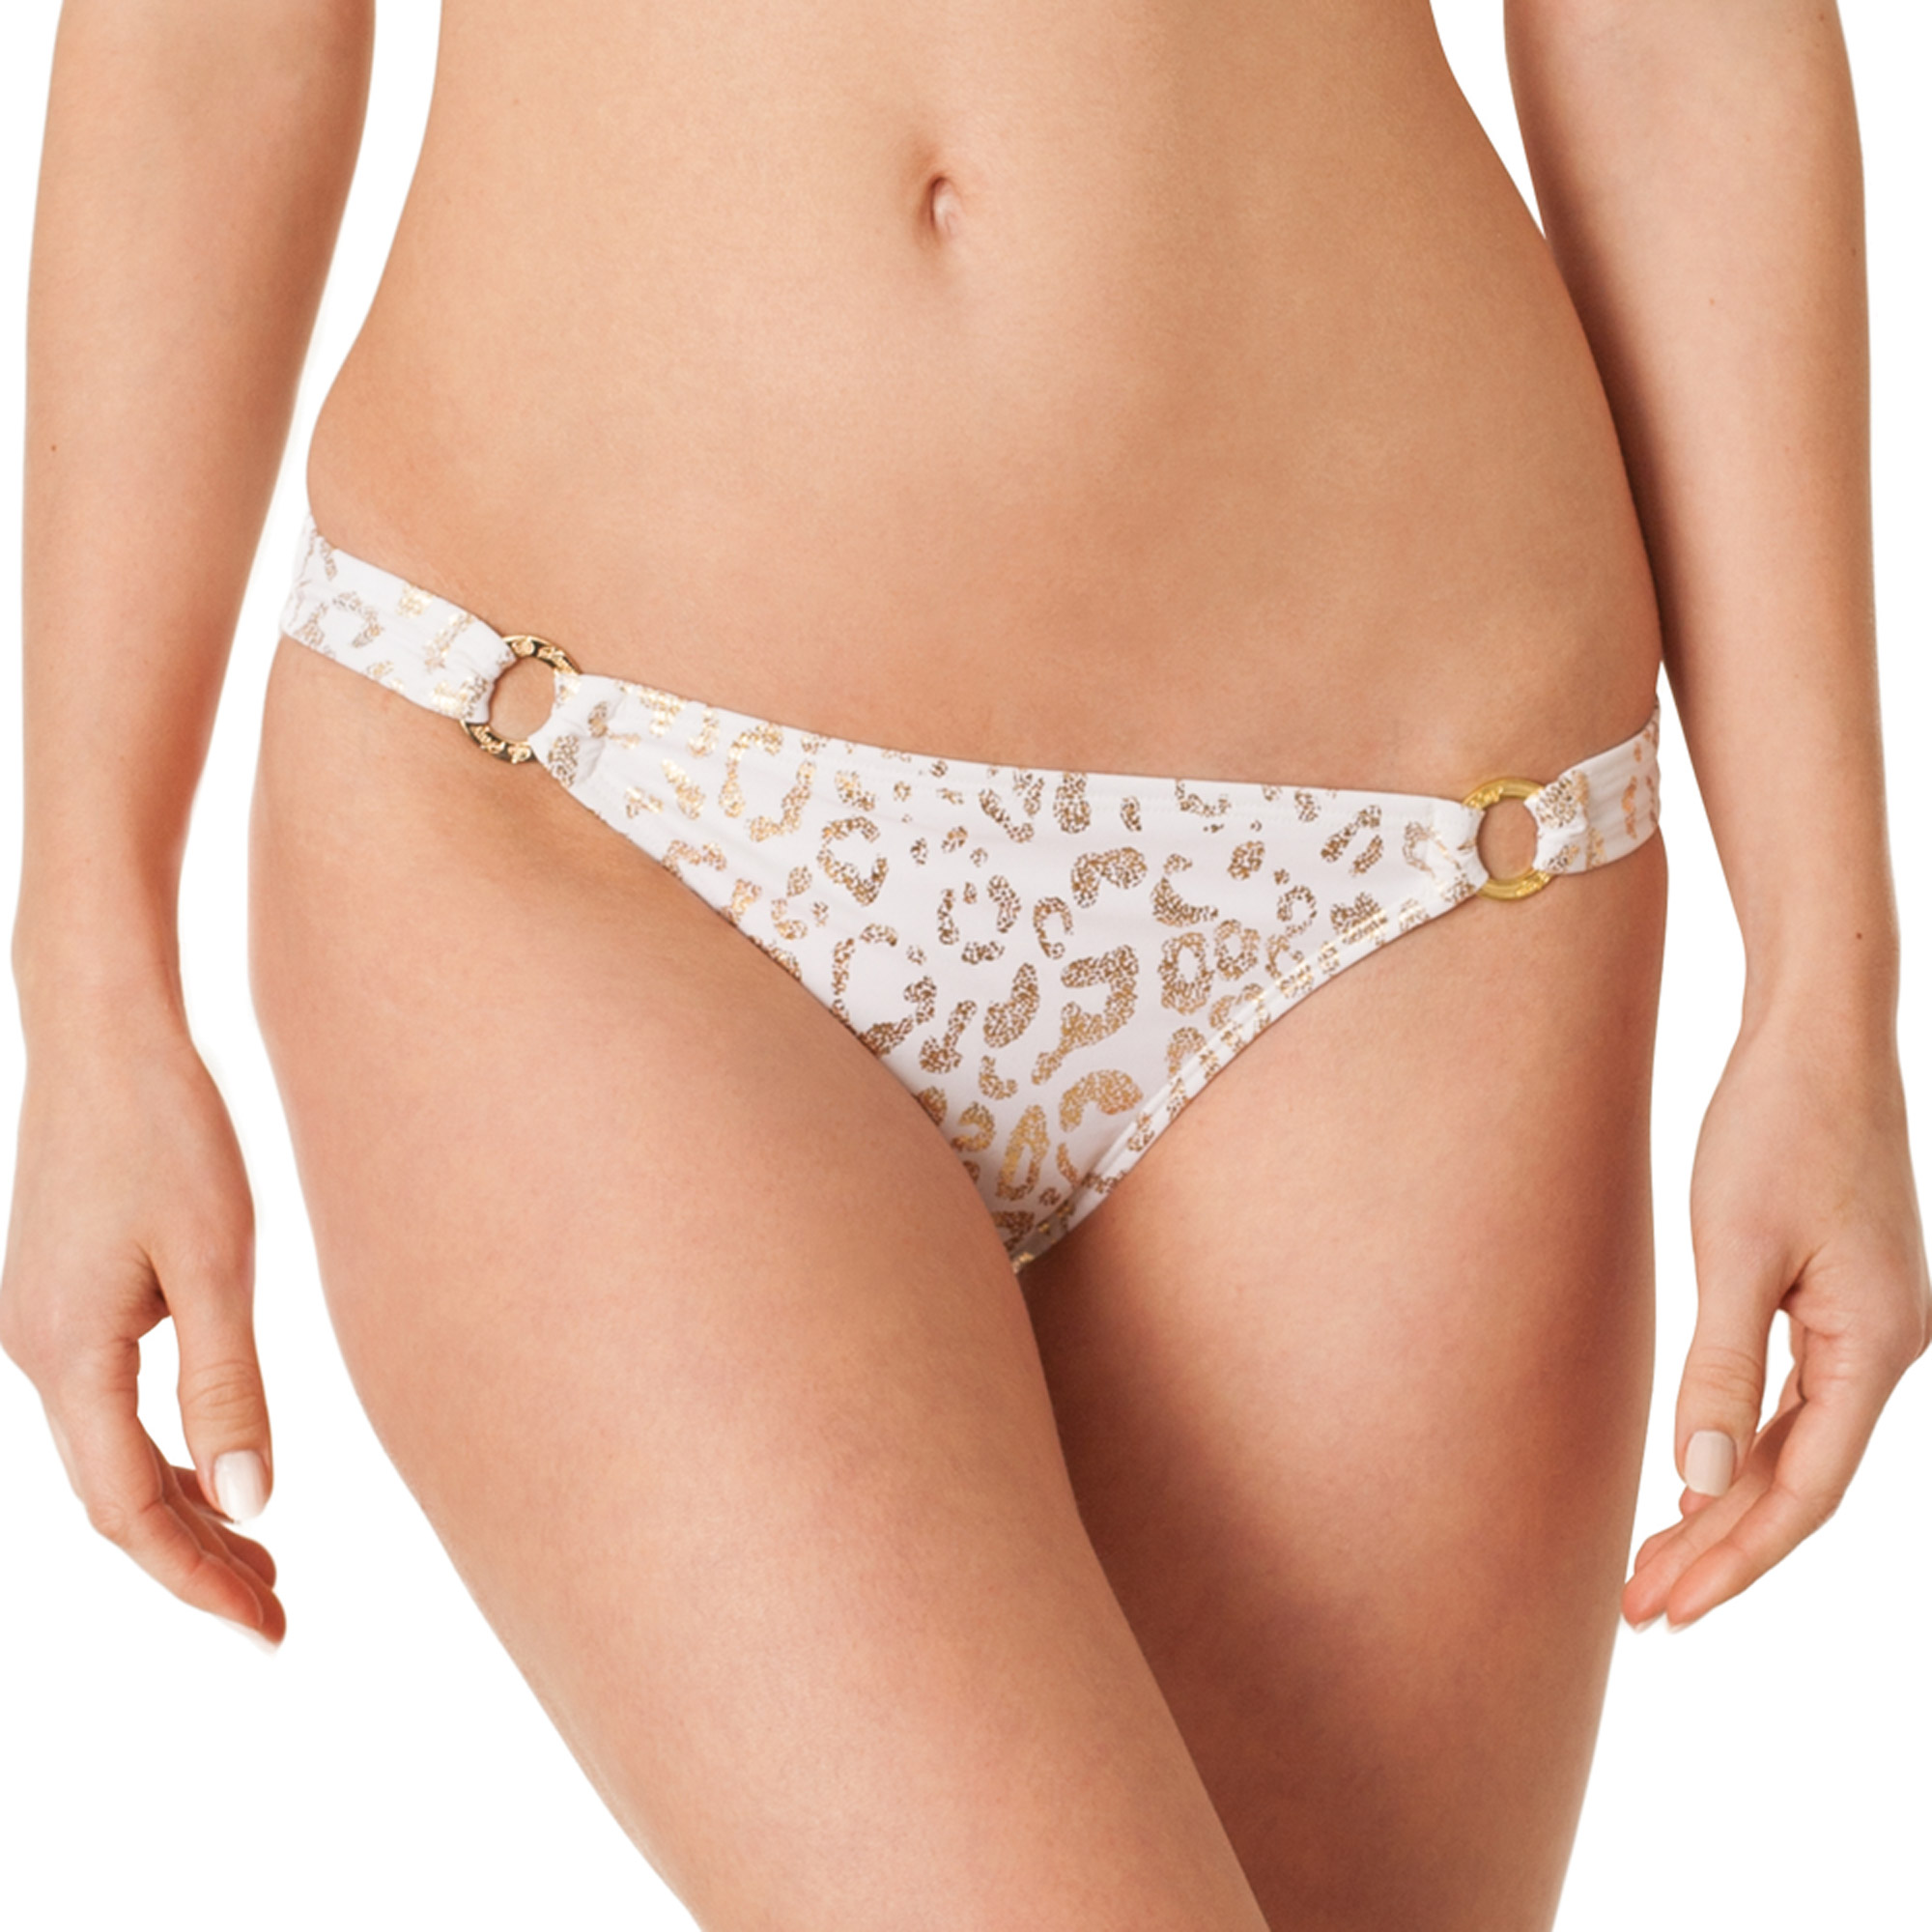 Smart & Sexy Women's Double-Ring Bikini Bottom